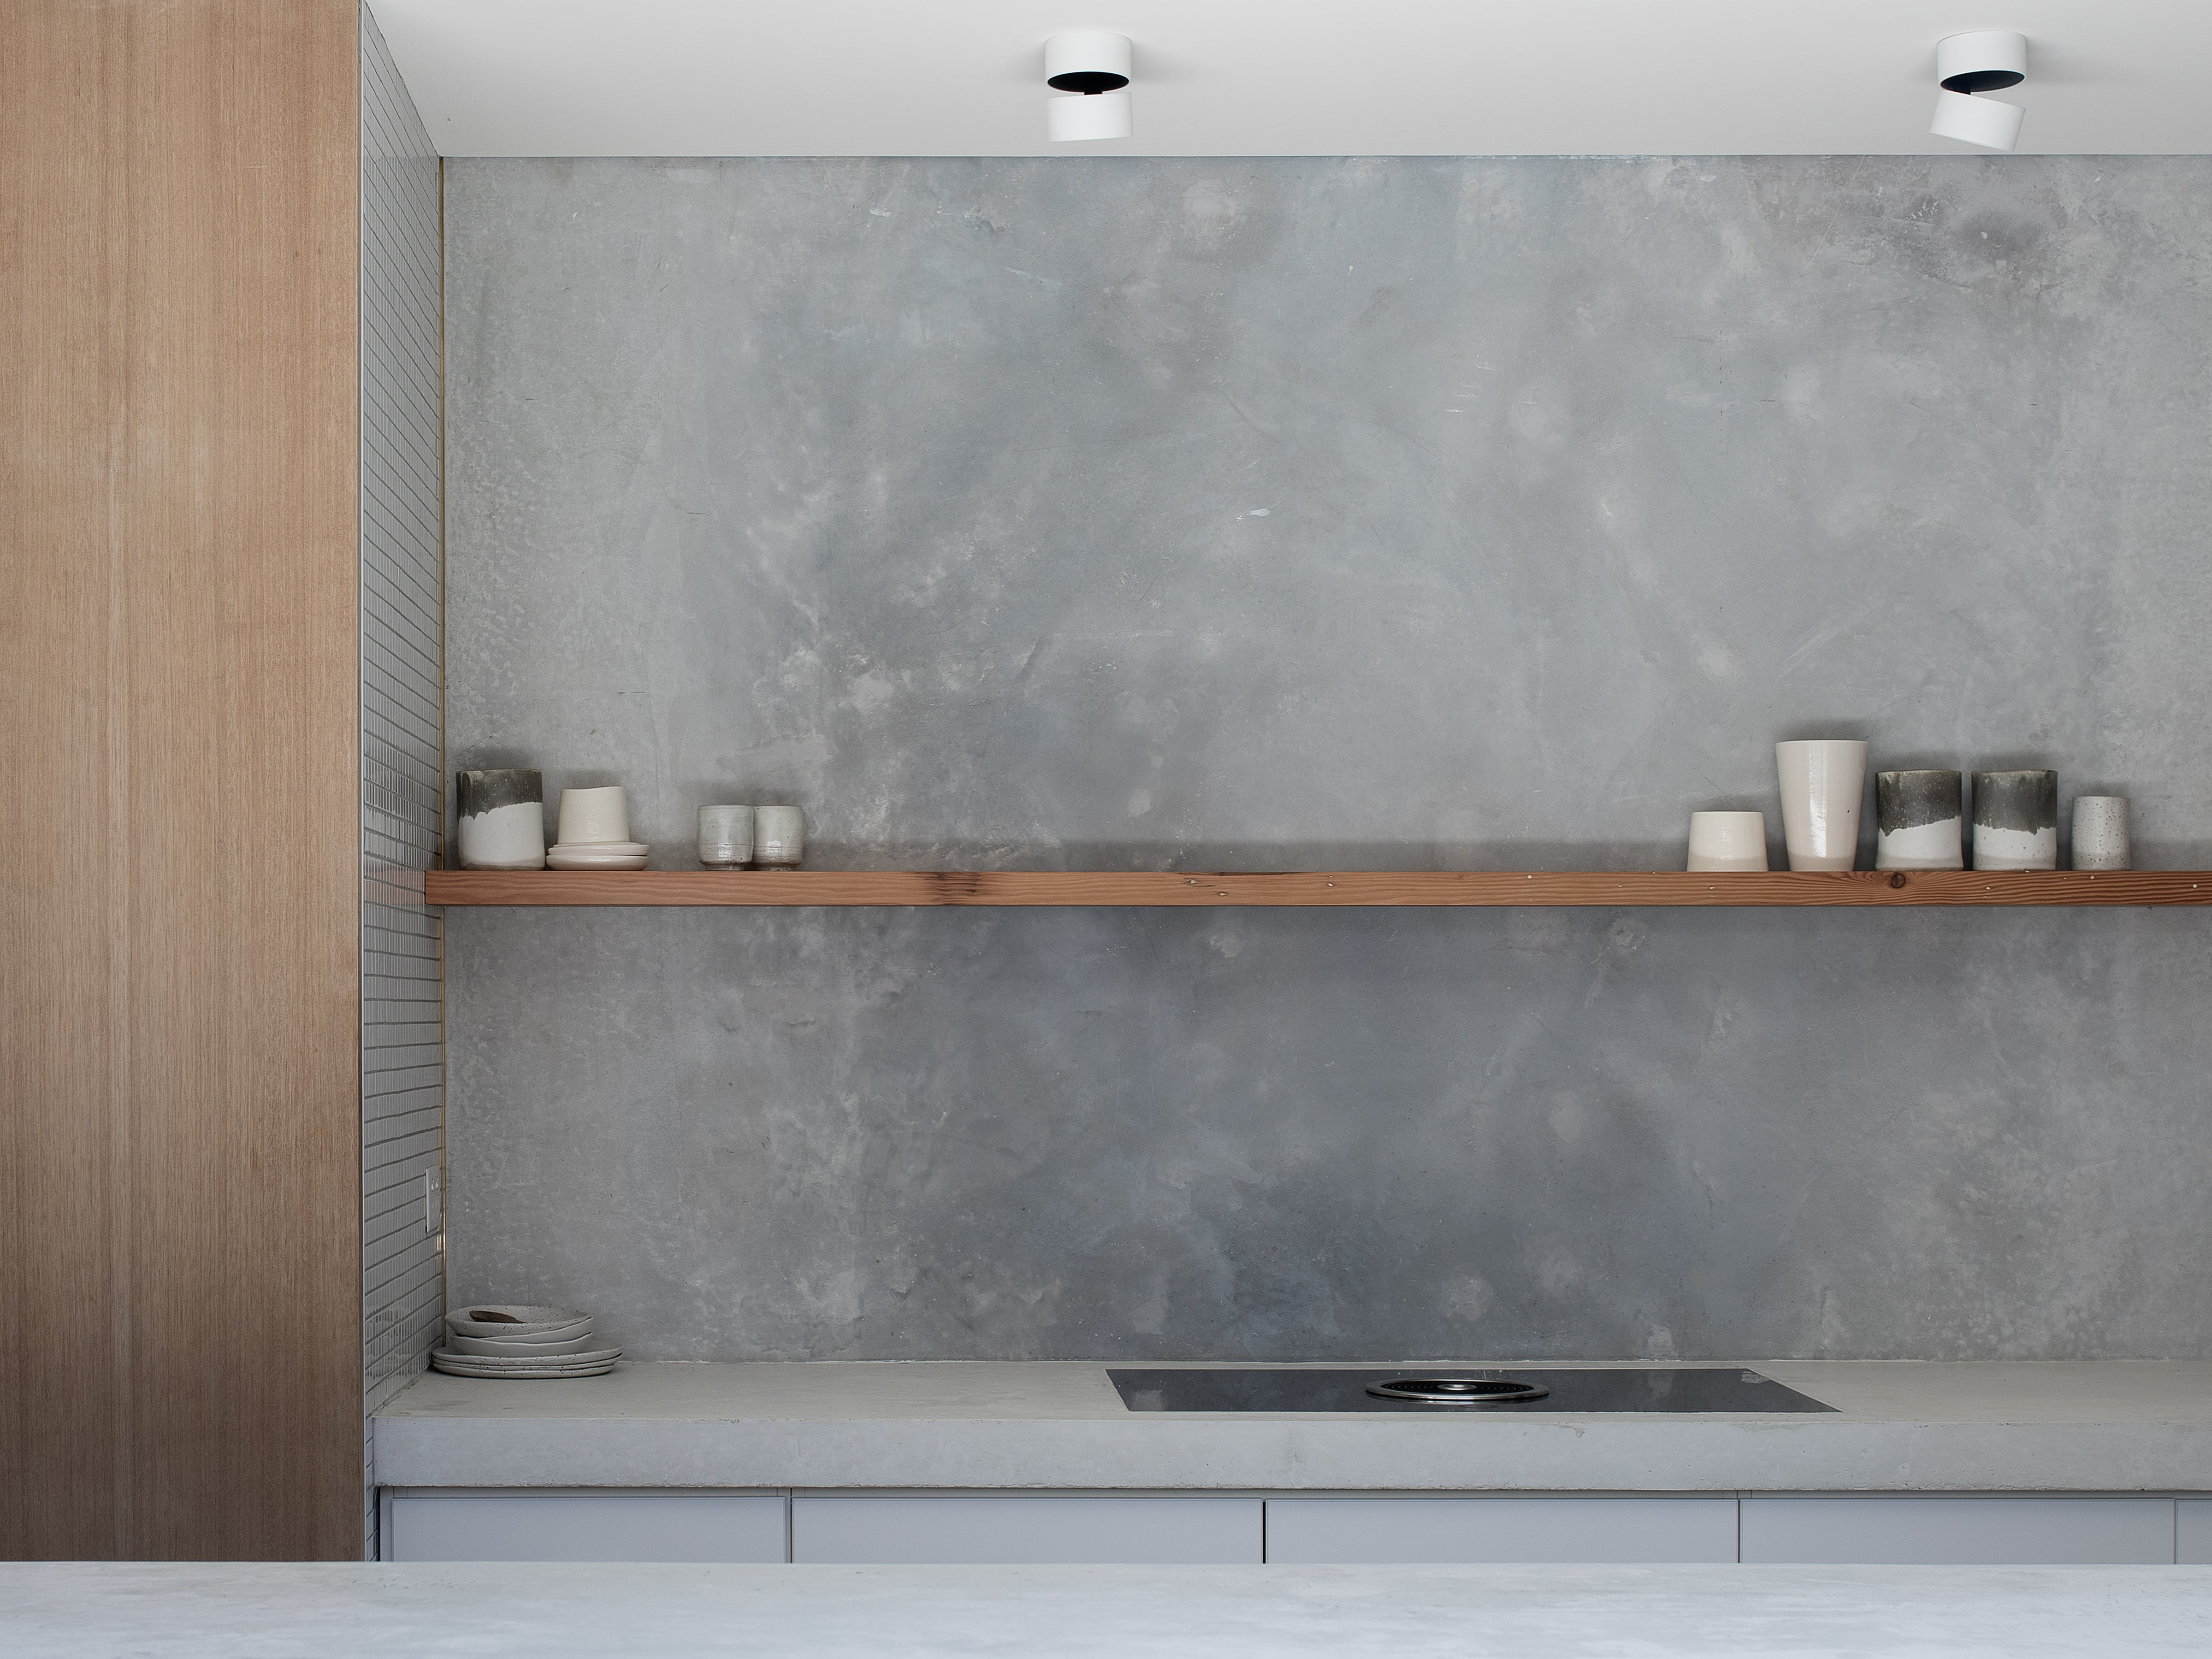 House A By Whispering Smith Local Australian Residential Bespoke Interior Design Scarborough, Perth Image 22